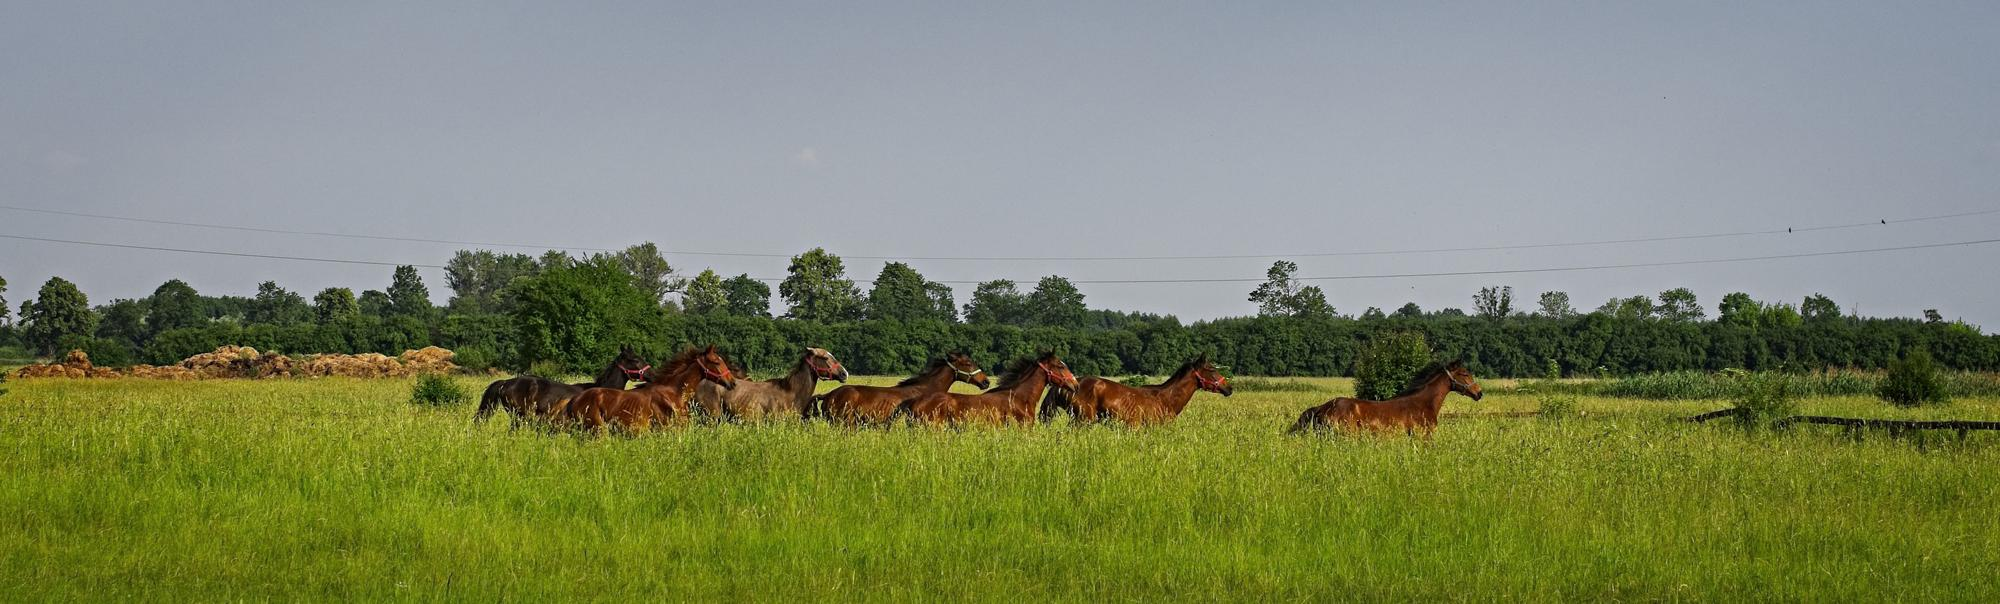 Places to Visit in Poland If You Are a Horse Lover